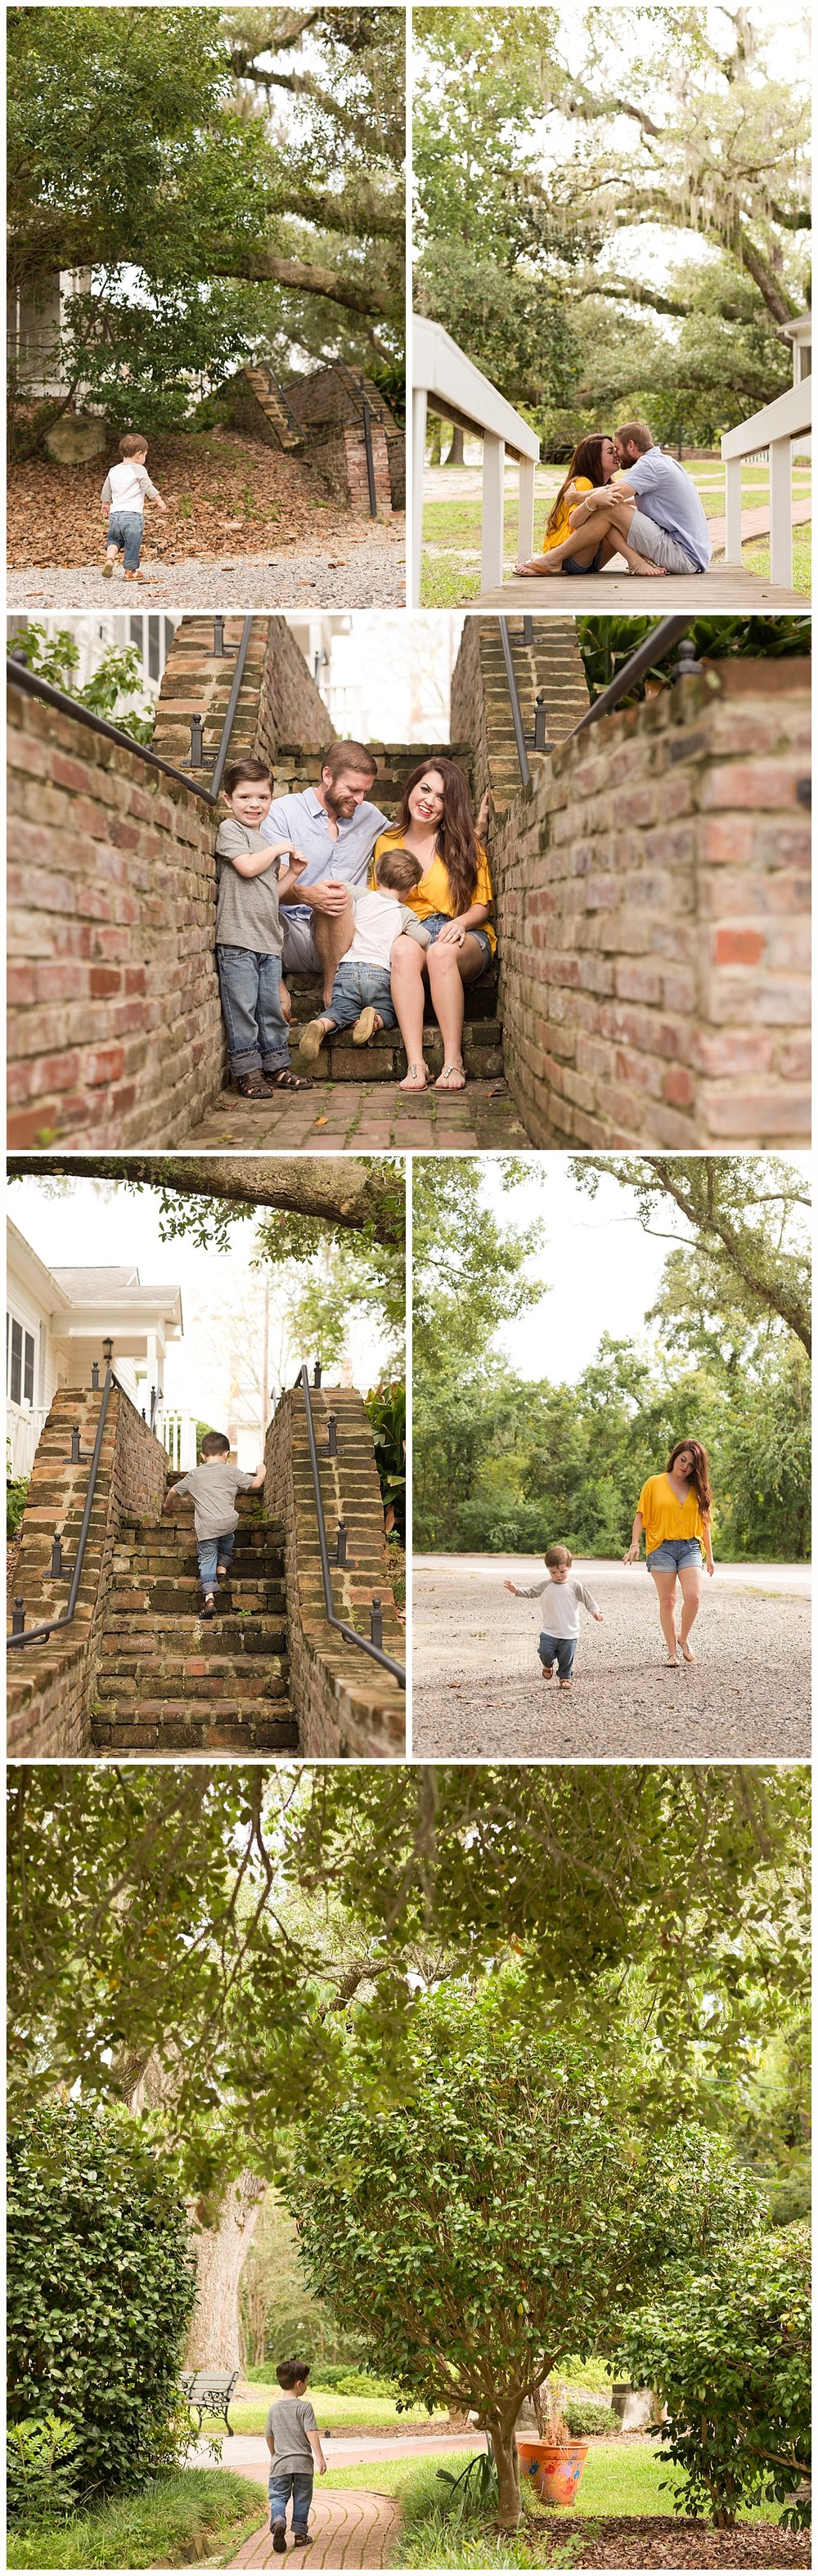 sweet family photos at First Presbyterian Church in Ocean Springs, Mississippi